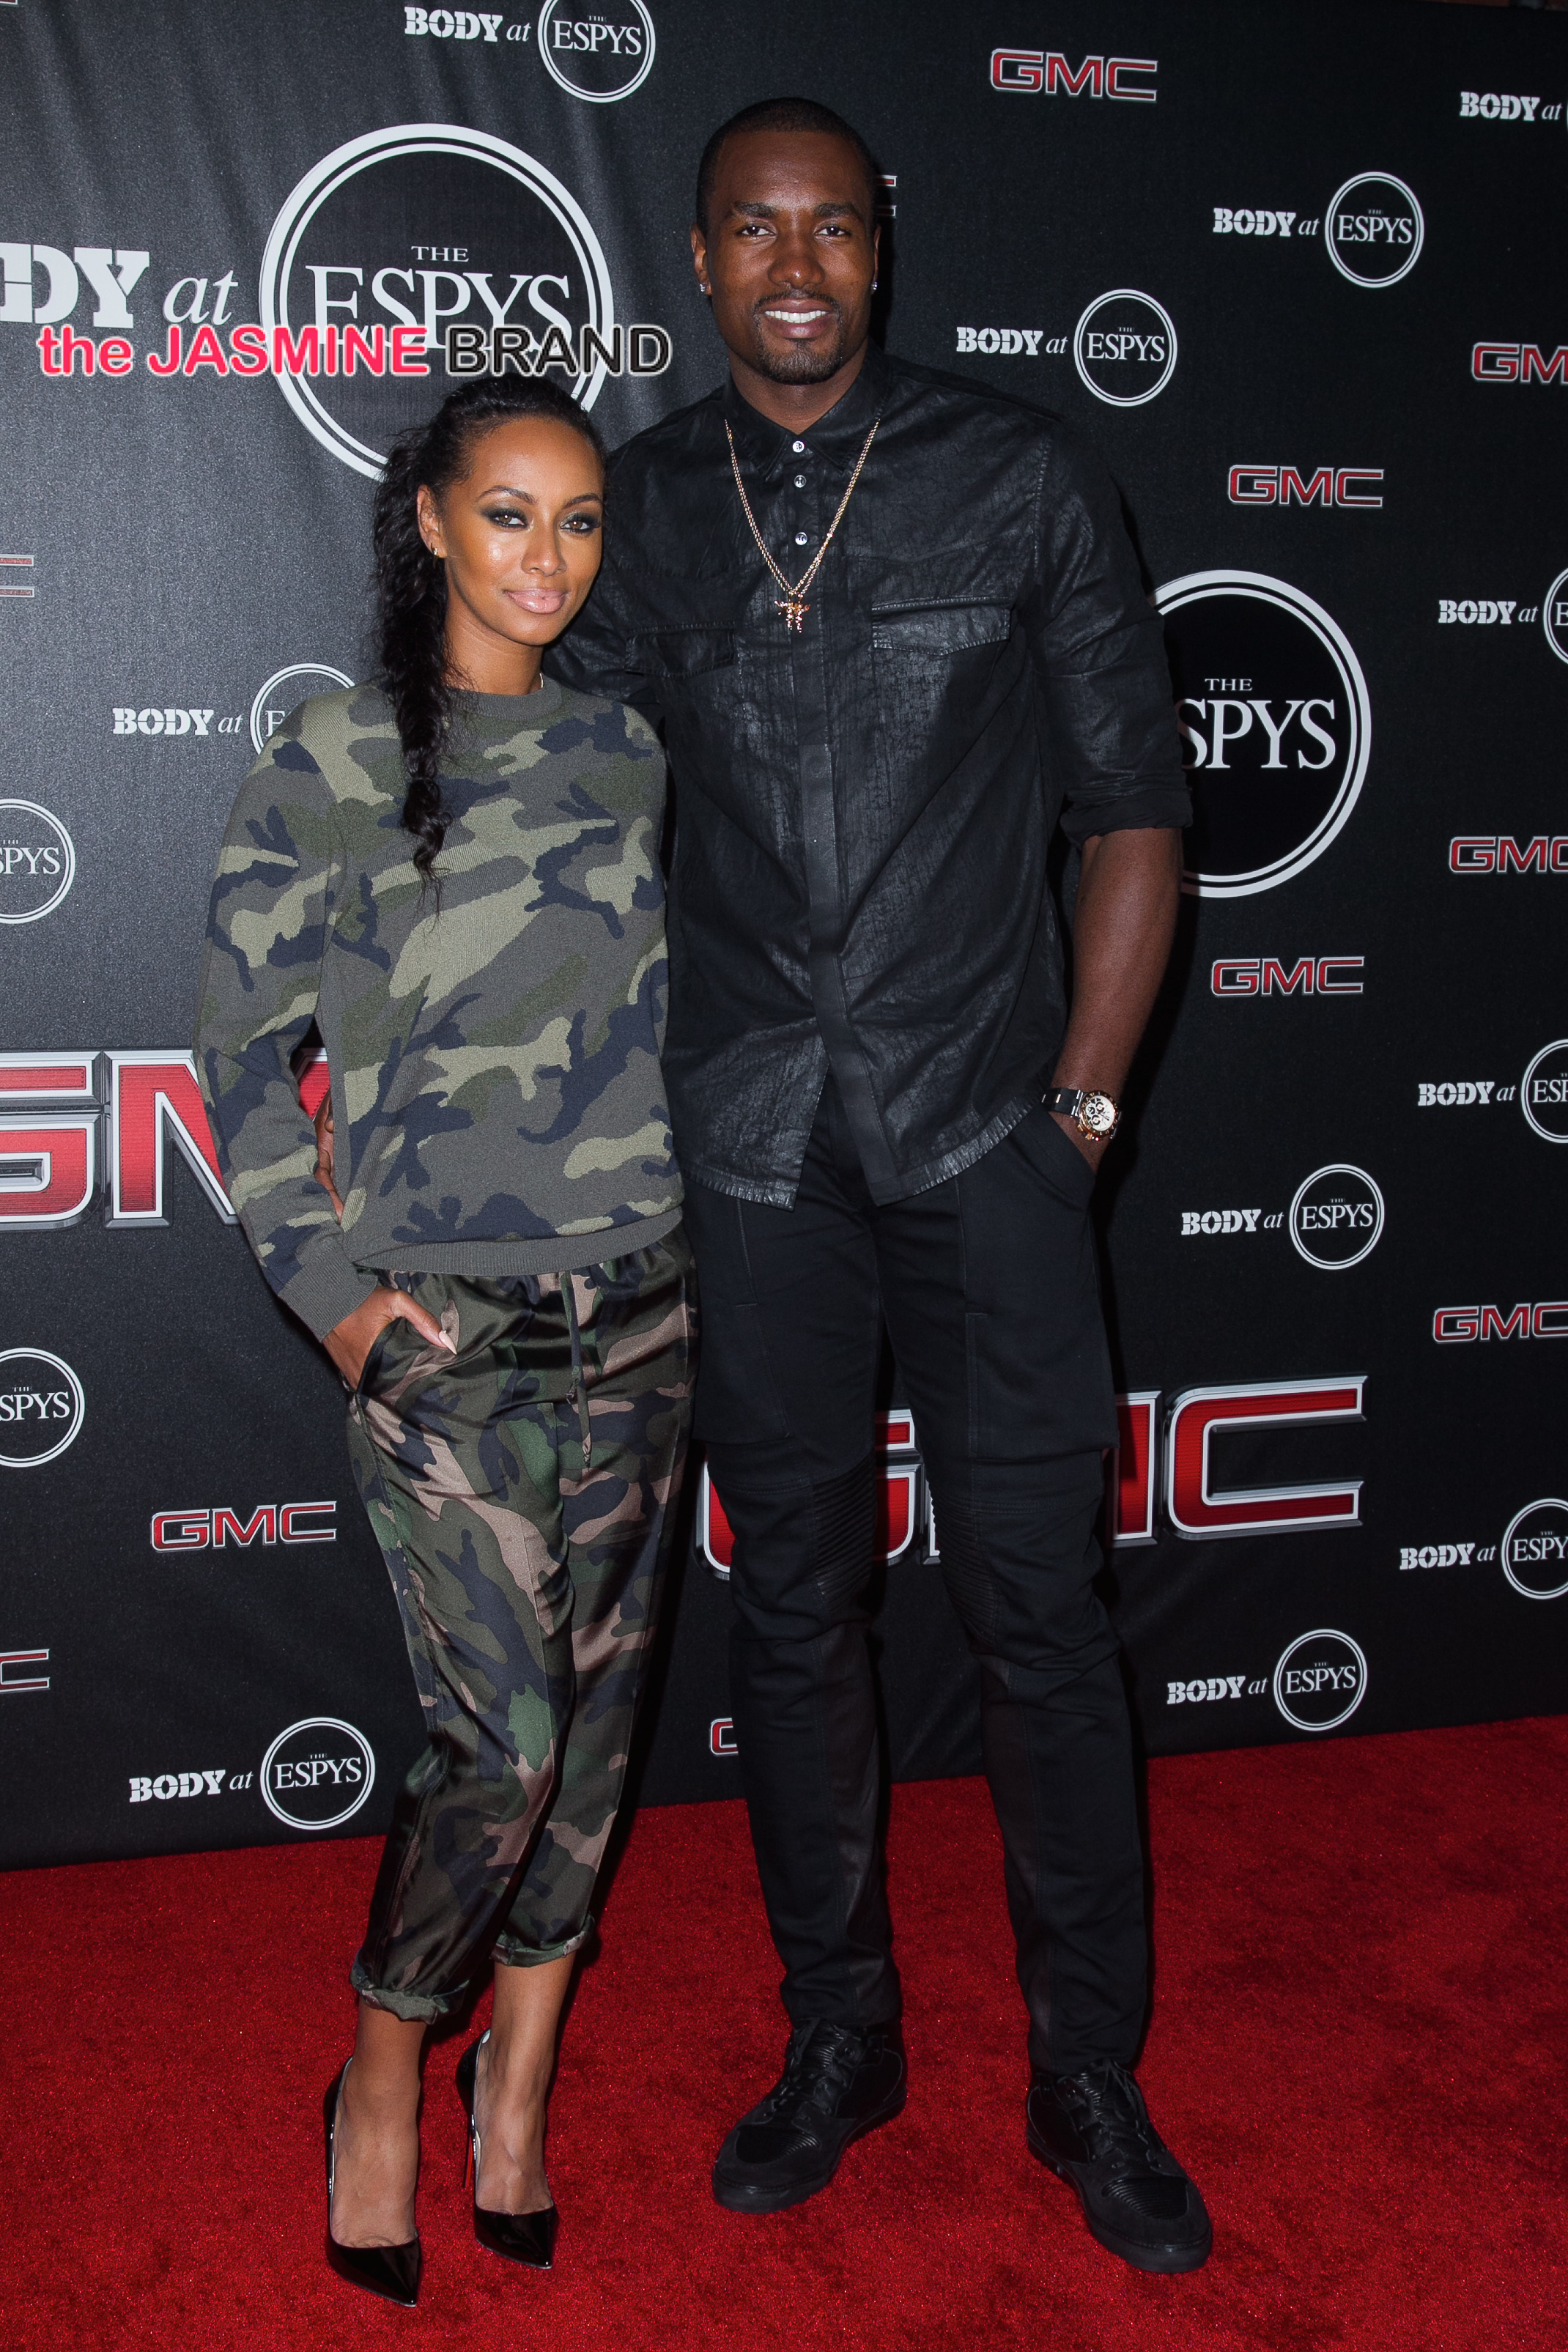 Keri Hilson and Serge Ibaka attend the ESPN's 6th Annual 'Body At ESPYS'